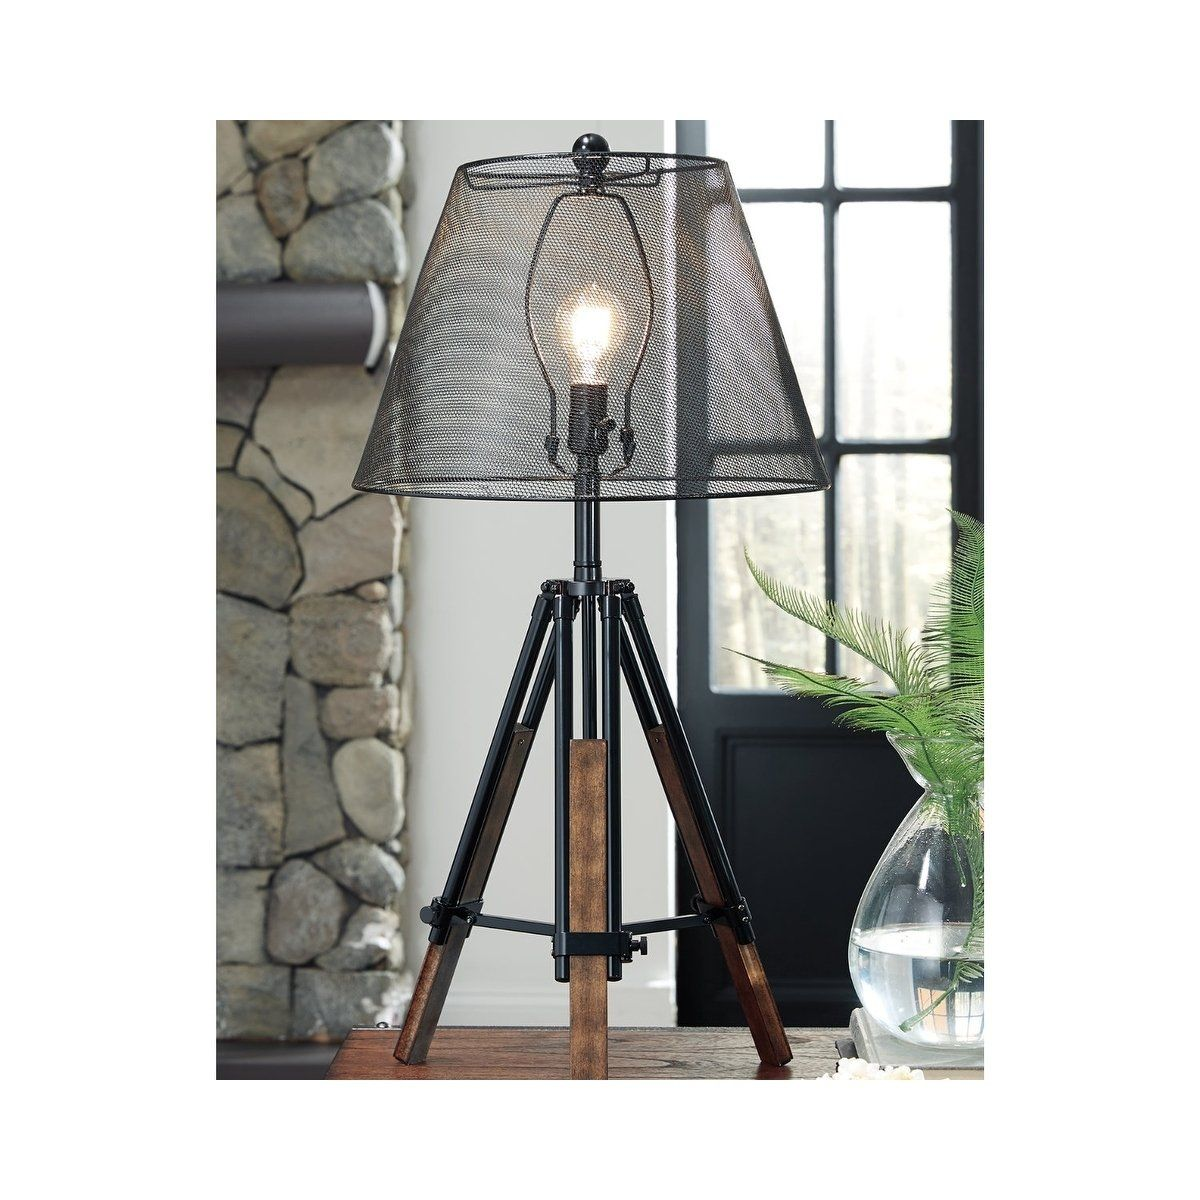 Leolyn Black 37 Inch Table Lamp With Wire Mesh Shade Signature Design By Ashley Black Table Lamps Table Lamp Wood Metal Table Lamps